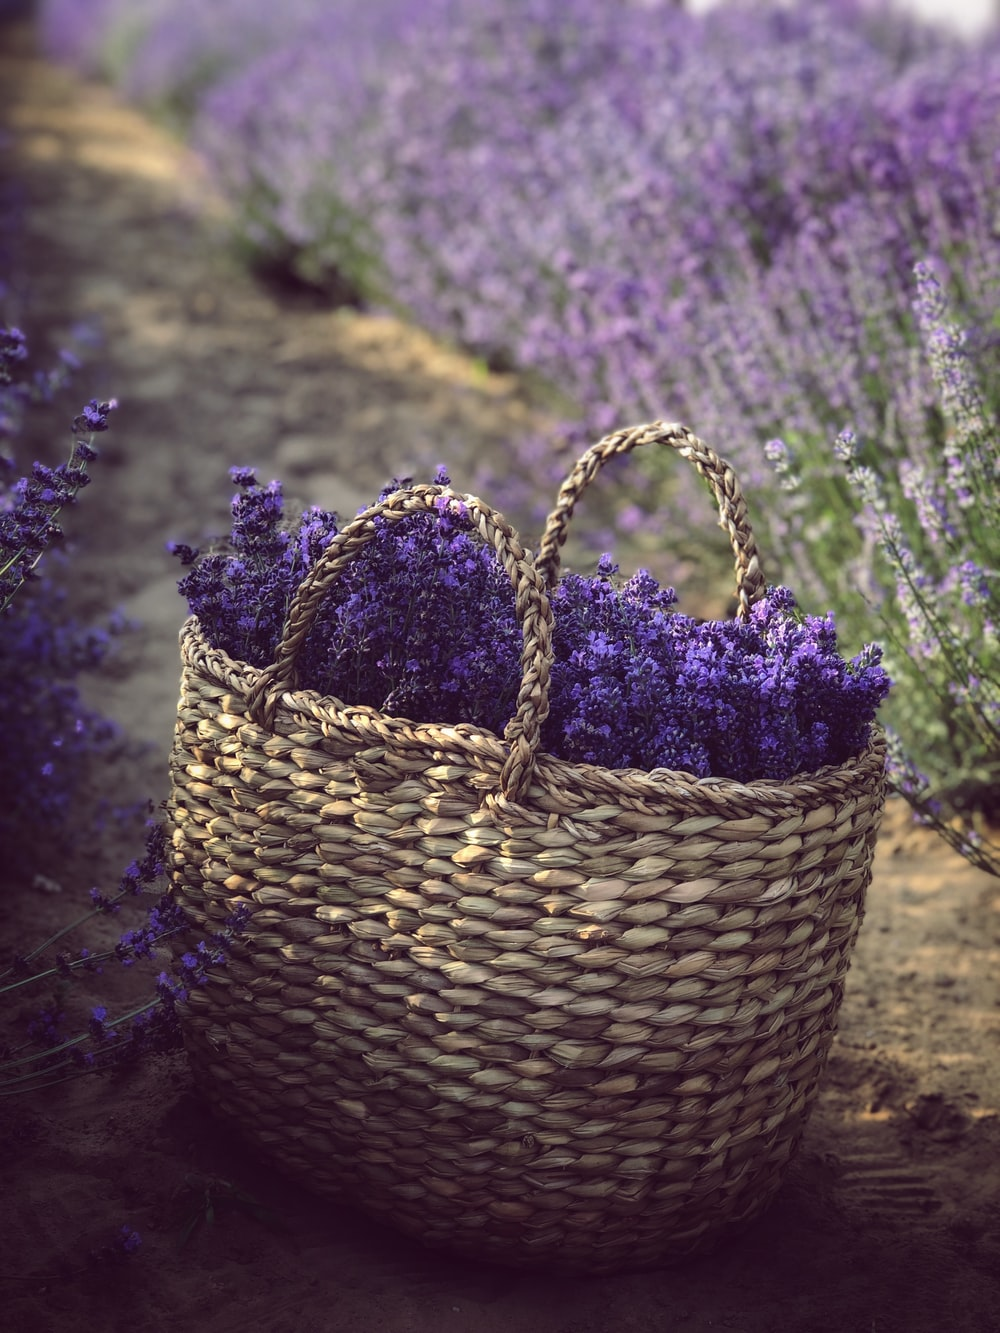 basket of purple lavender flowers on the ground